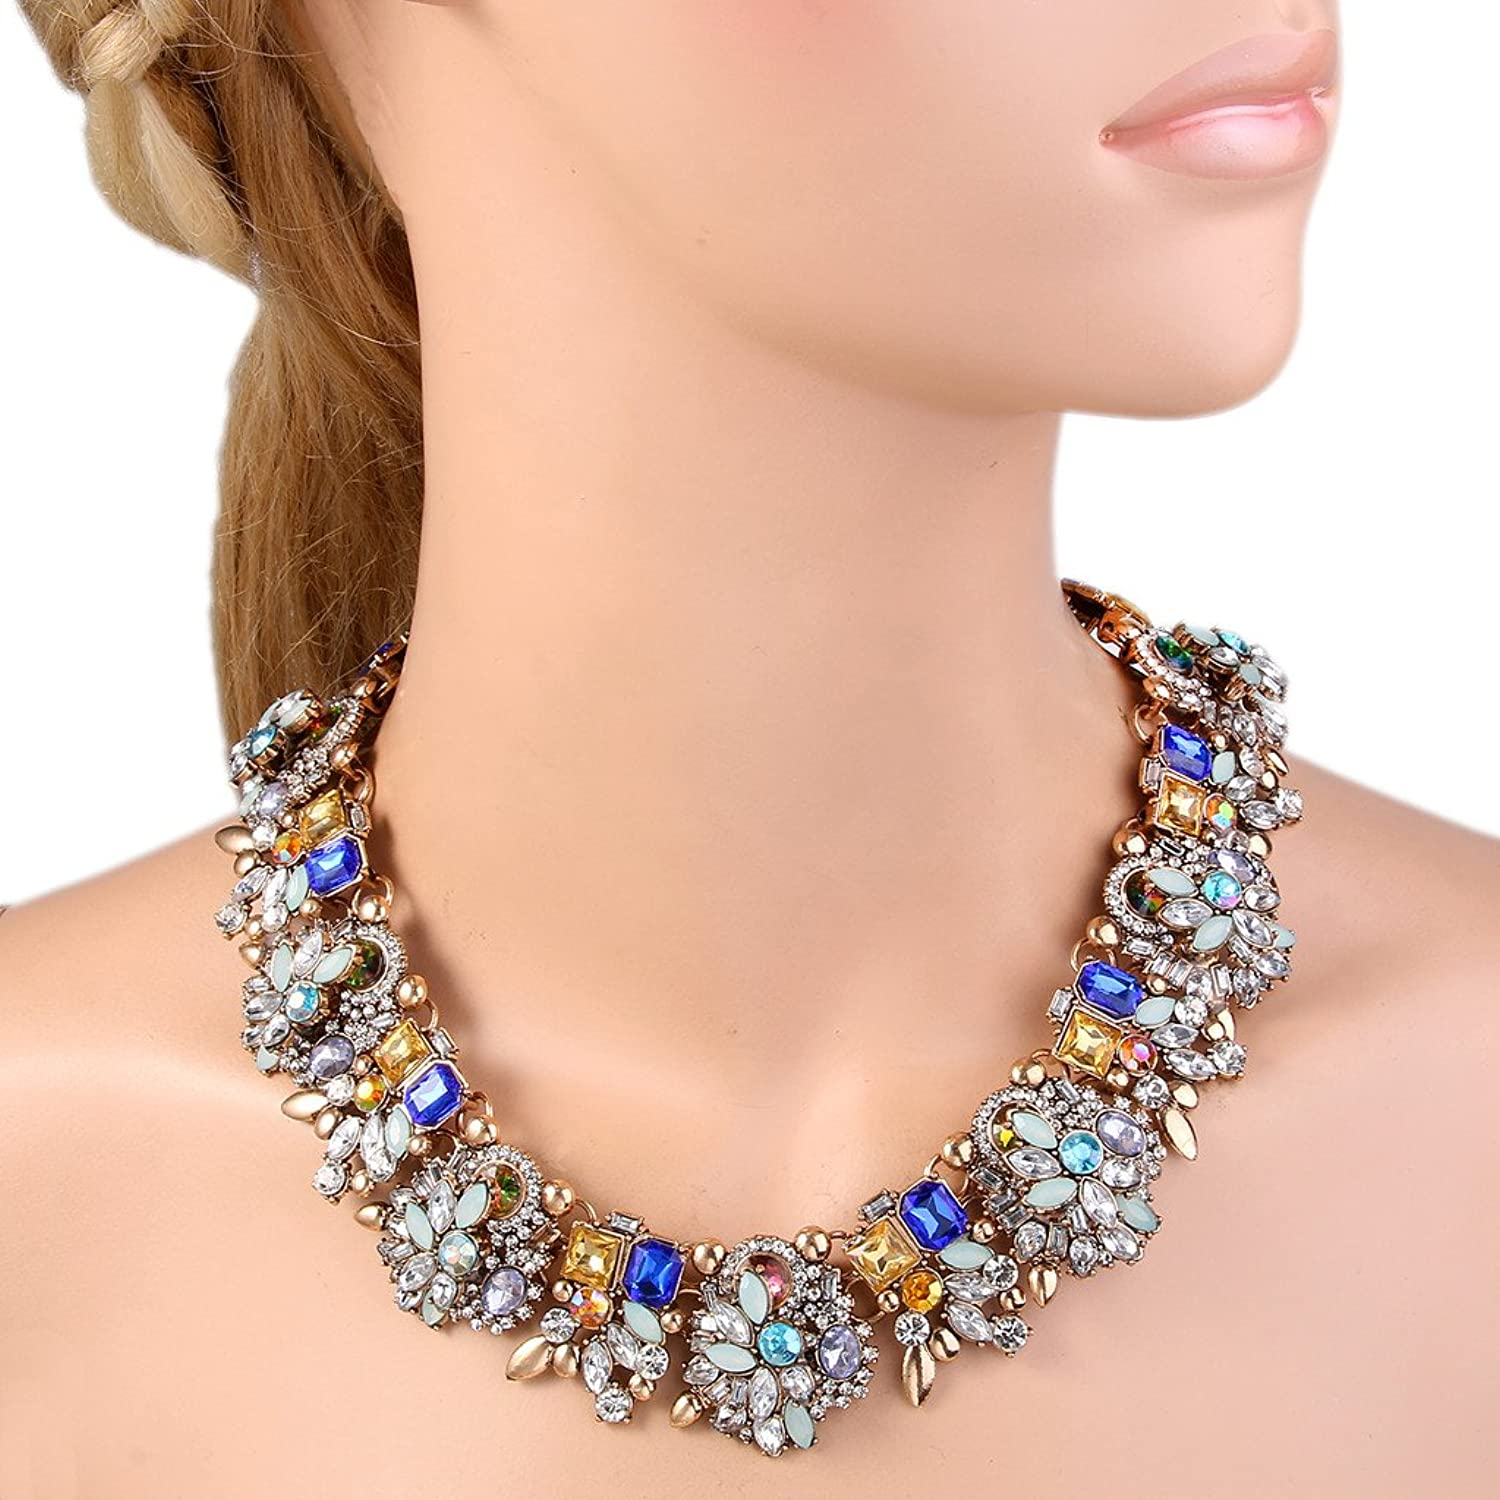 1950s Jewelry Styles and History  Art Deco Statement Necklace Austrian Crystal Gold-Tone $22.99 AT vintagedancer.com